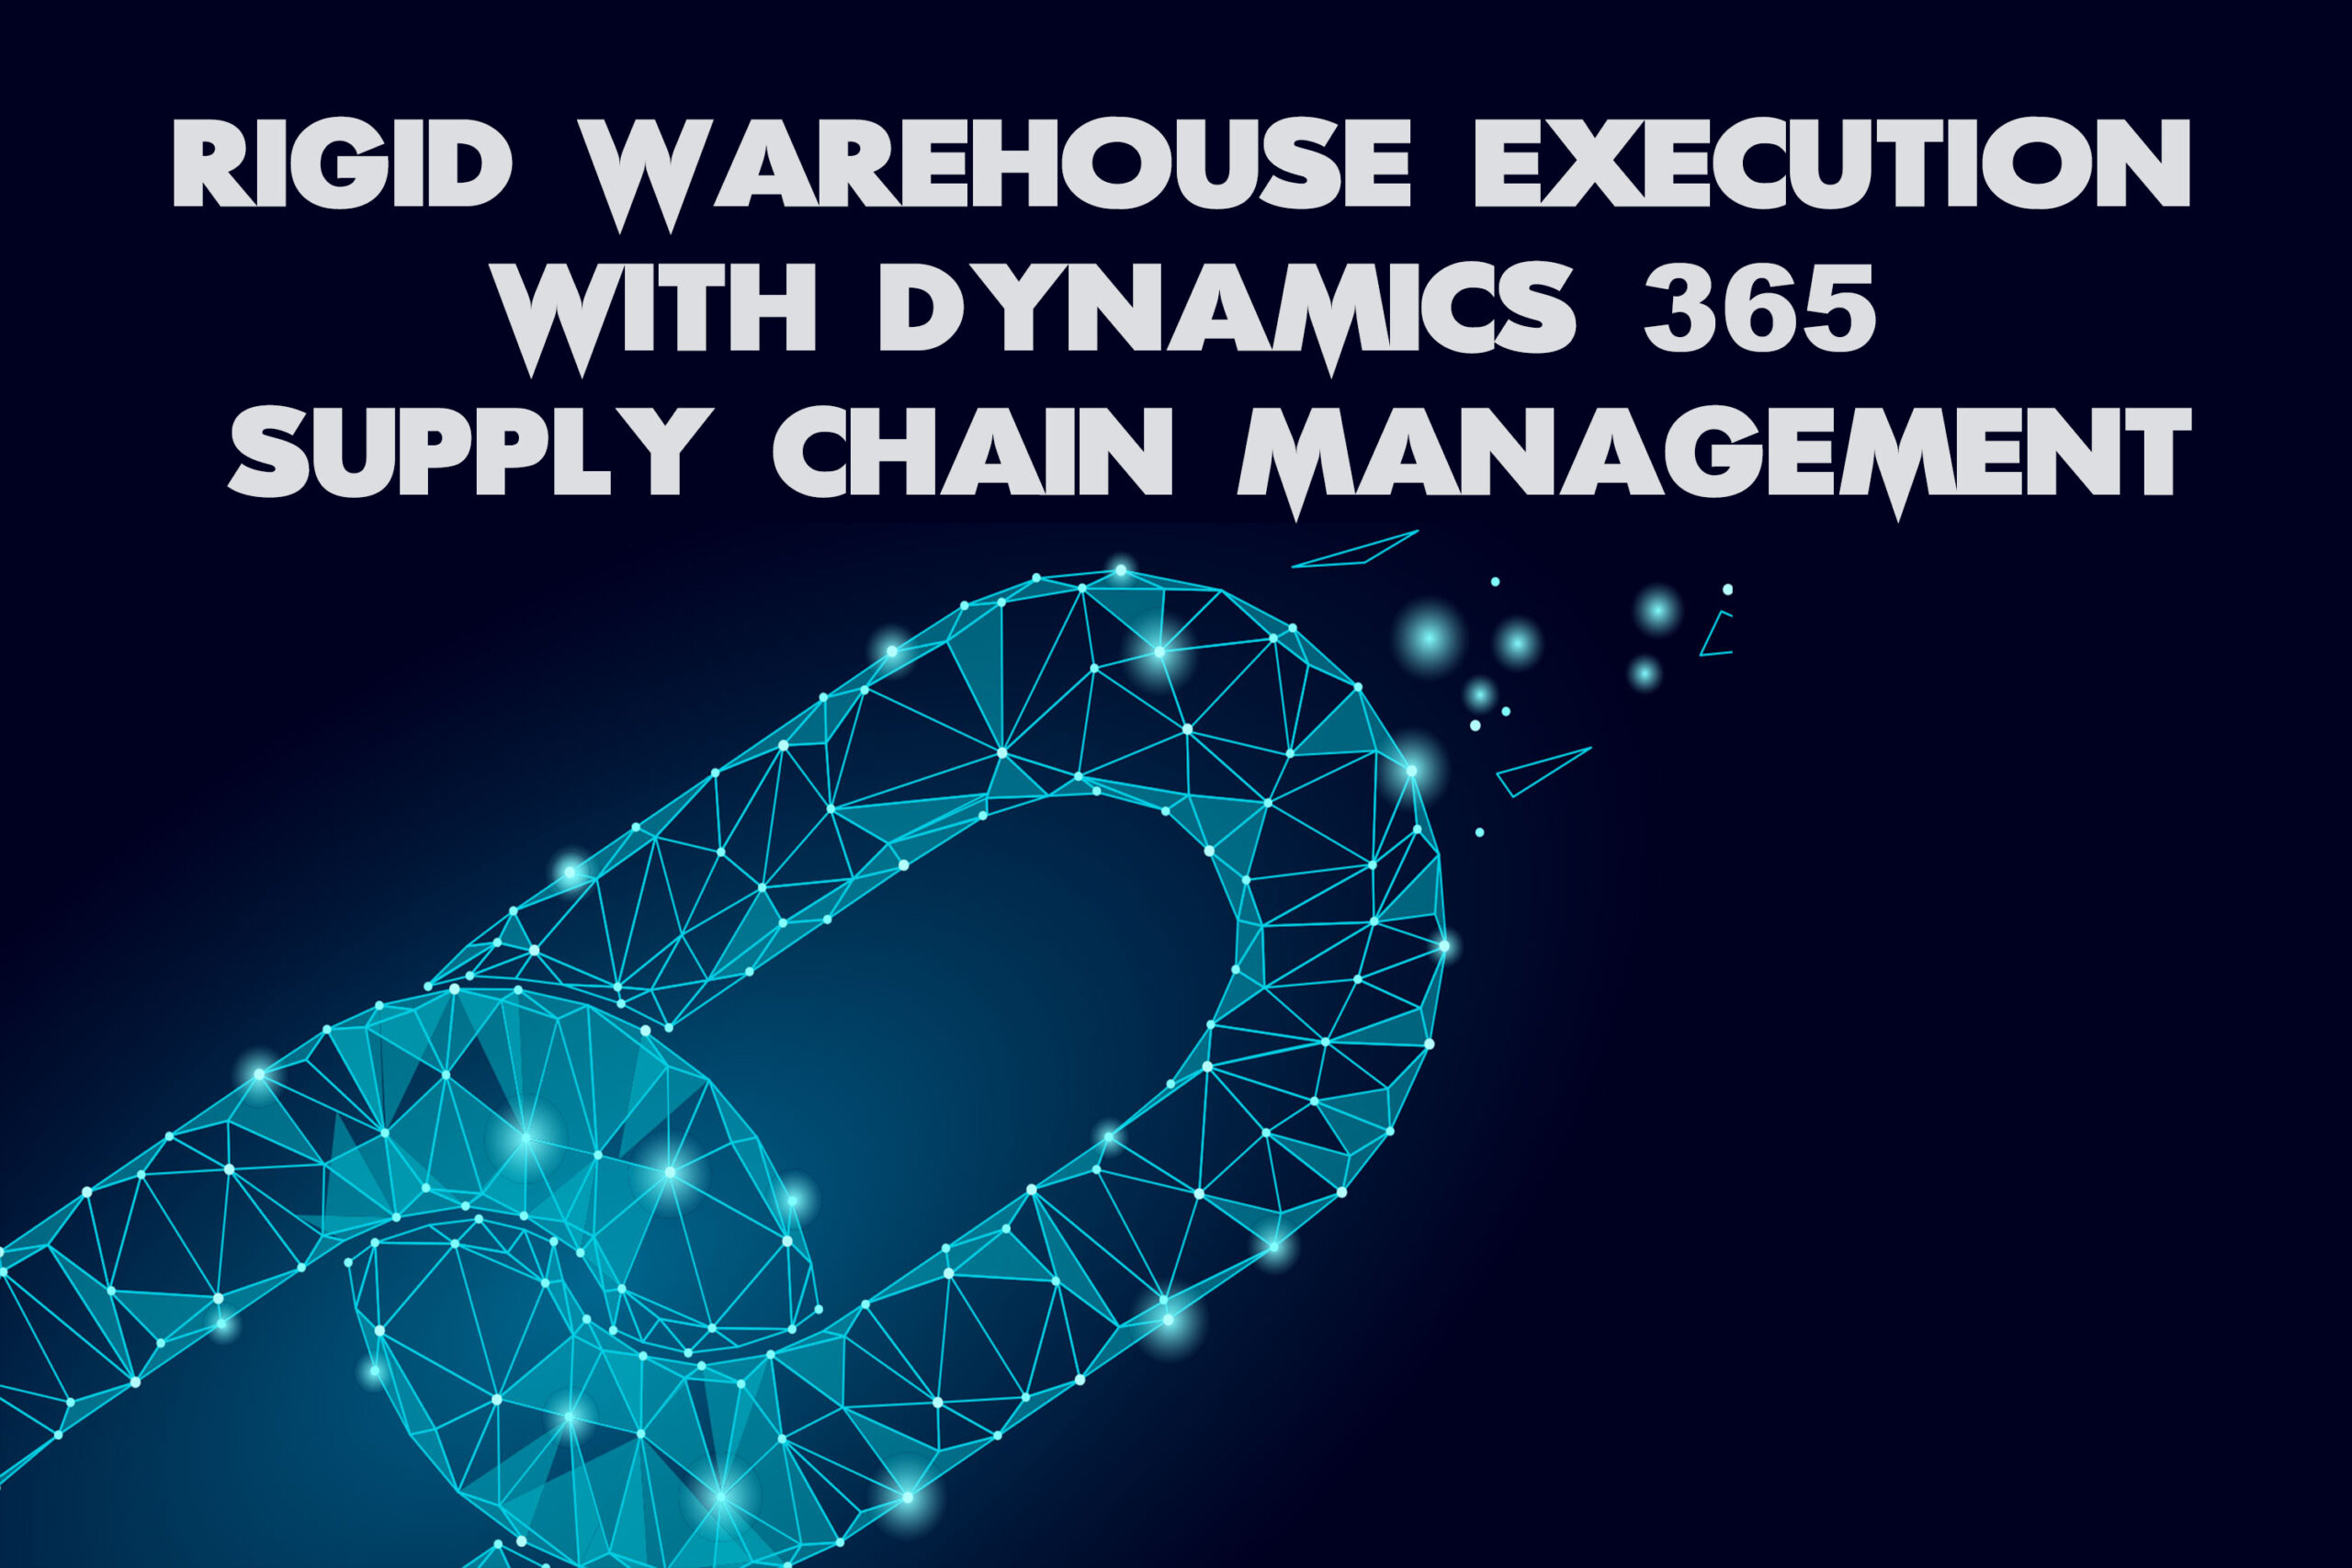 Rigid warehouse execution  with Dynamics 365 Supply Chain Management